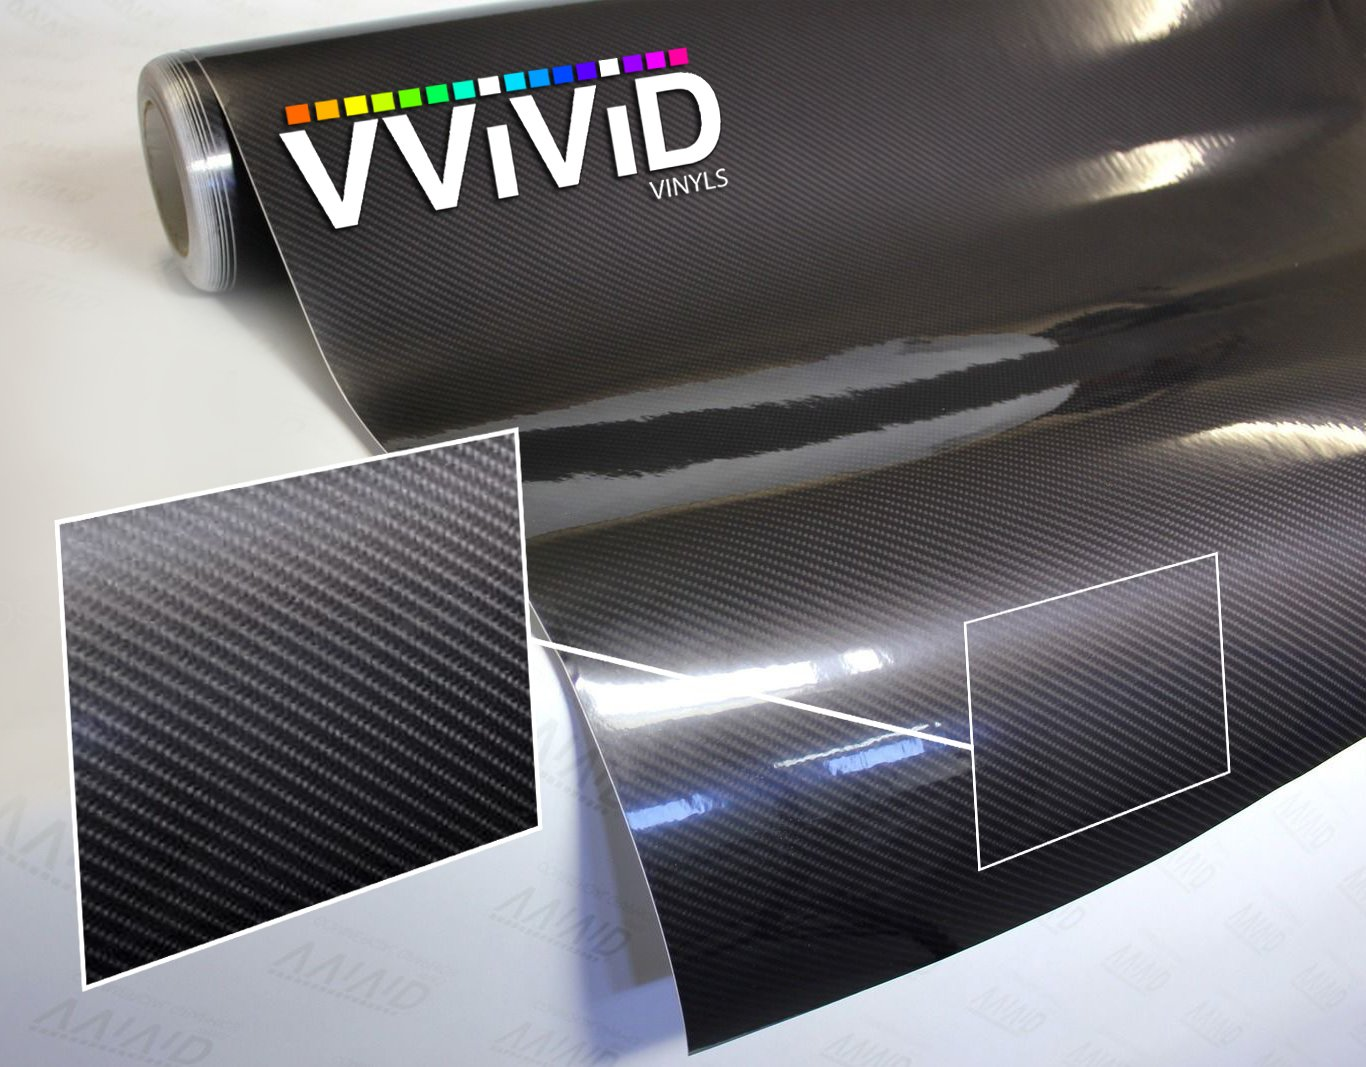 "x2 chevydecalwrapblackcarbonfiber1 VVIVID TechArt Black Carbon Fiber Auto Emblem Vinyl Wrap Overlay Cut-Your-Own Decal for Chevy Bowtie Grill Rear Logo DIY Easy to Install 11.80/"" x 4/"" Sheets"